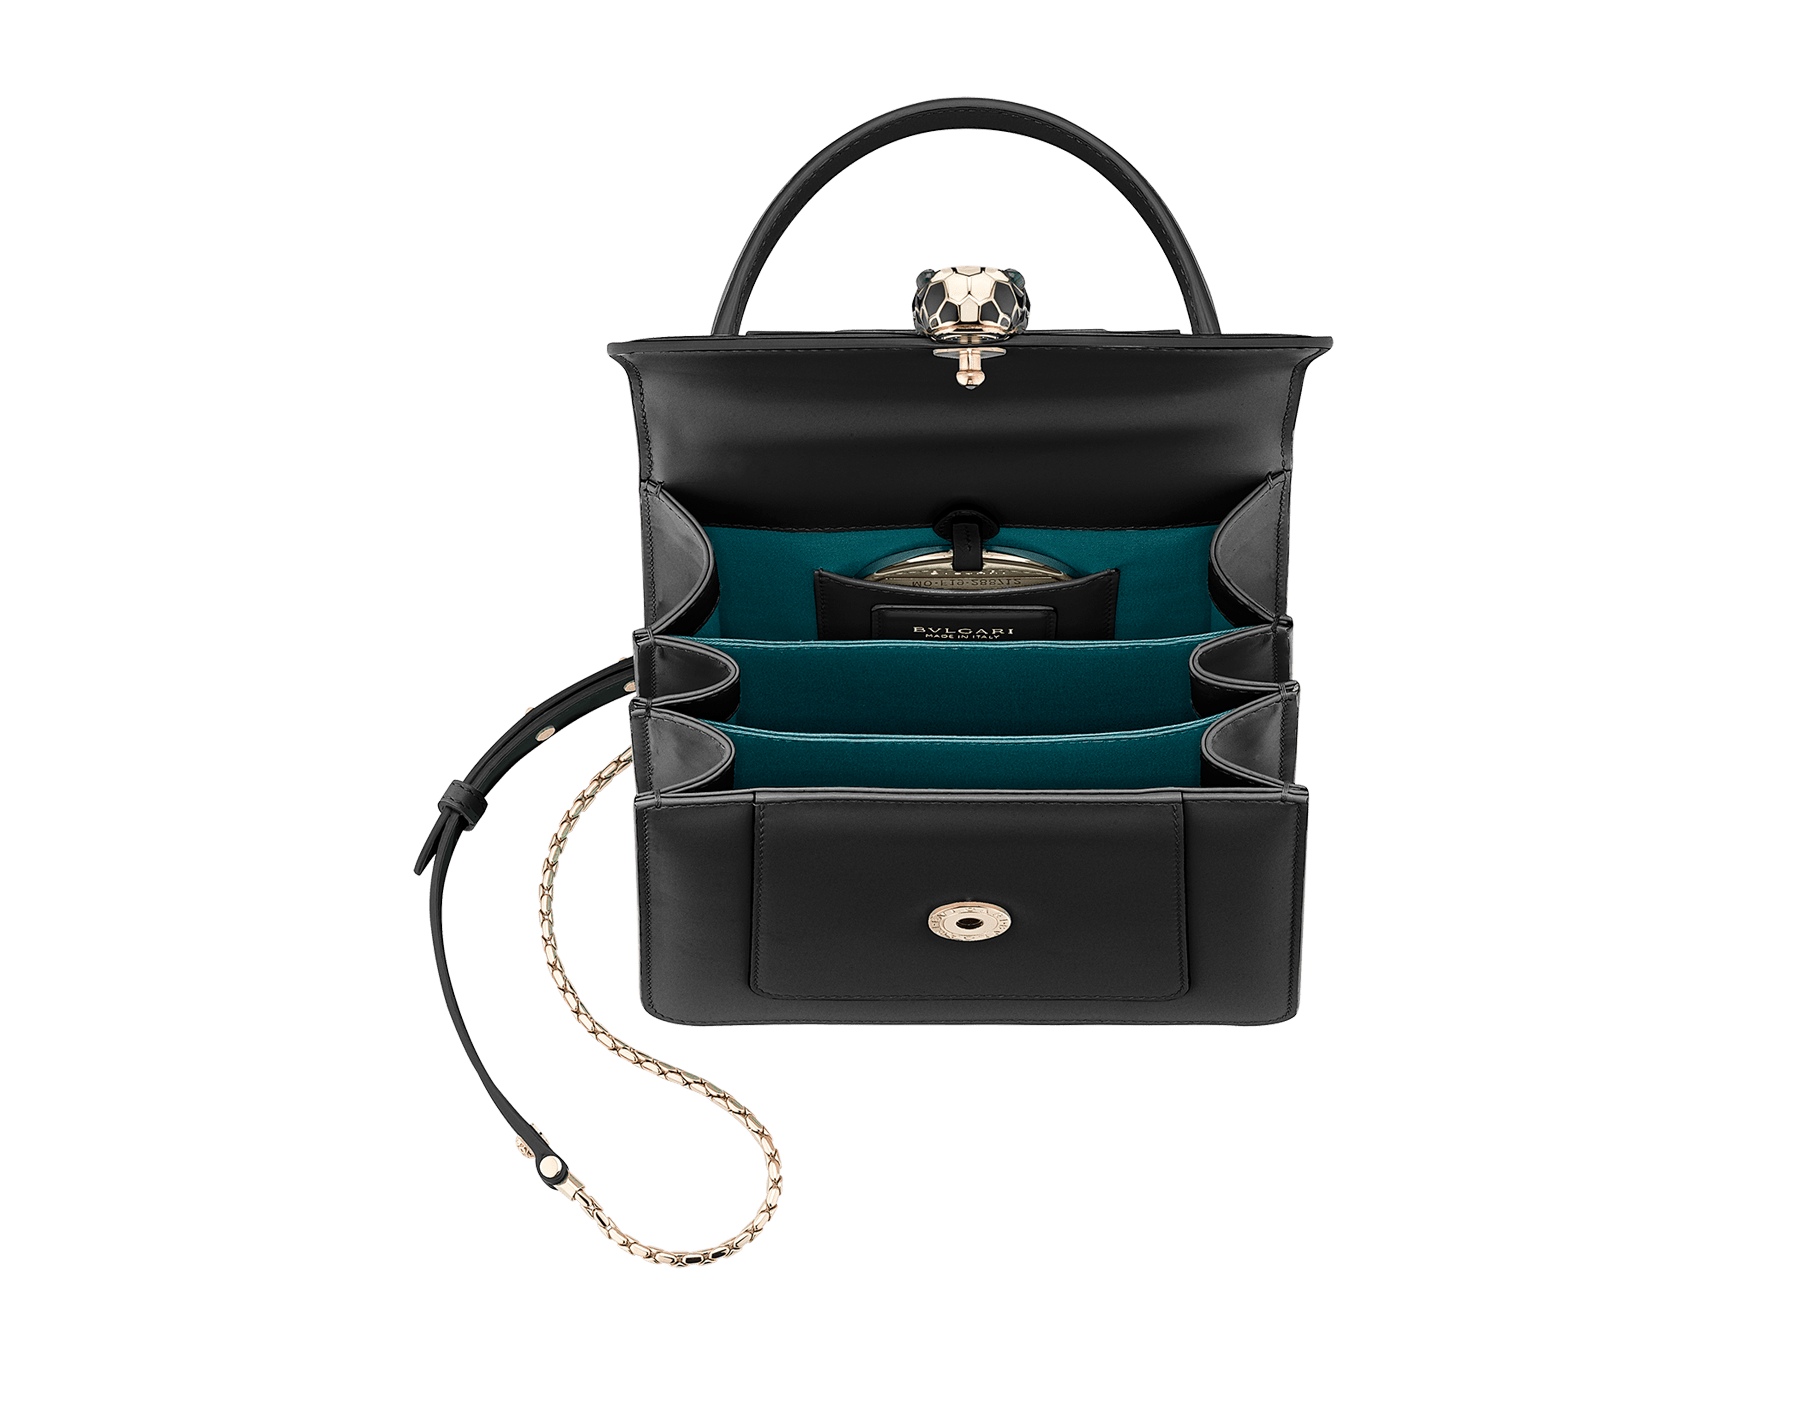 Flap cover bag Serpenti Forever in black calf leather and jade green gros-grain lining.Brass light gold plated hardware and snake head closure in black and white enamel with eyes in green malachite. 284537 image 5